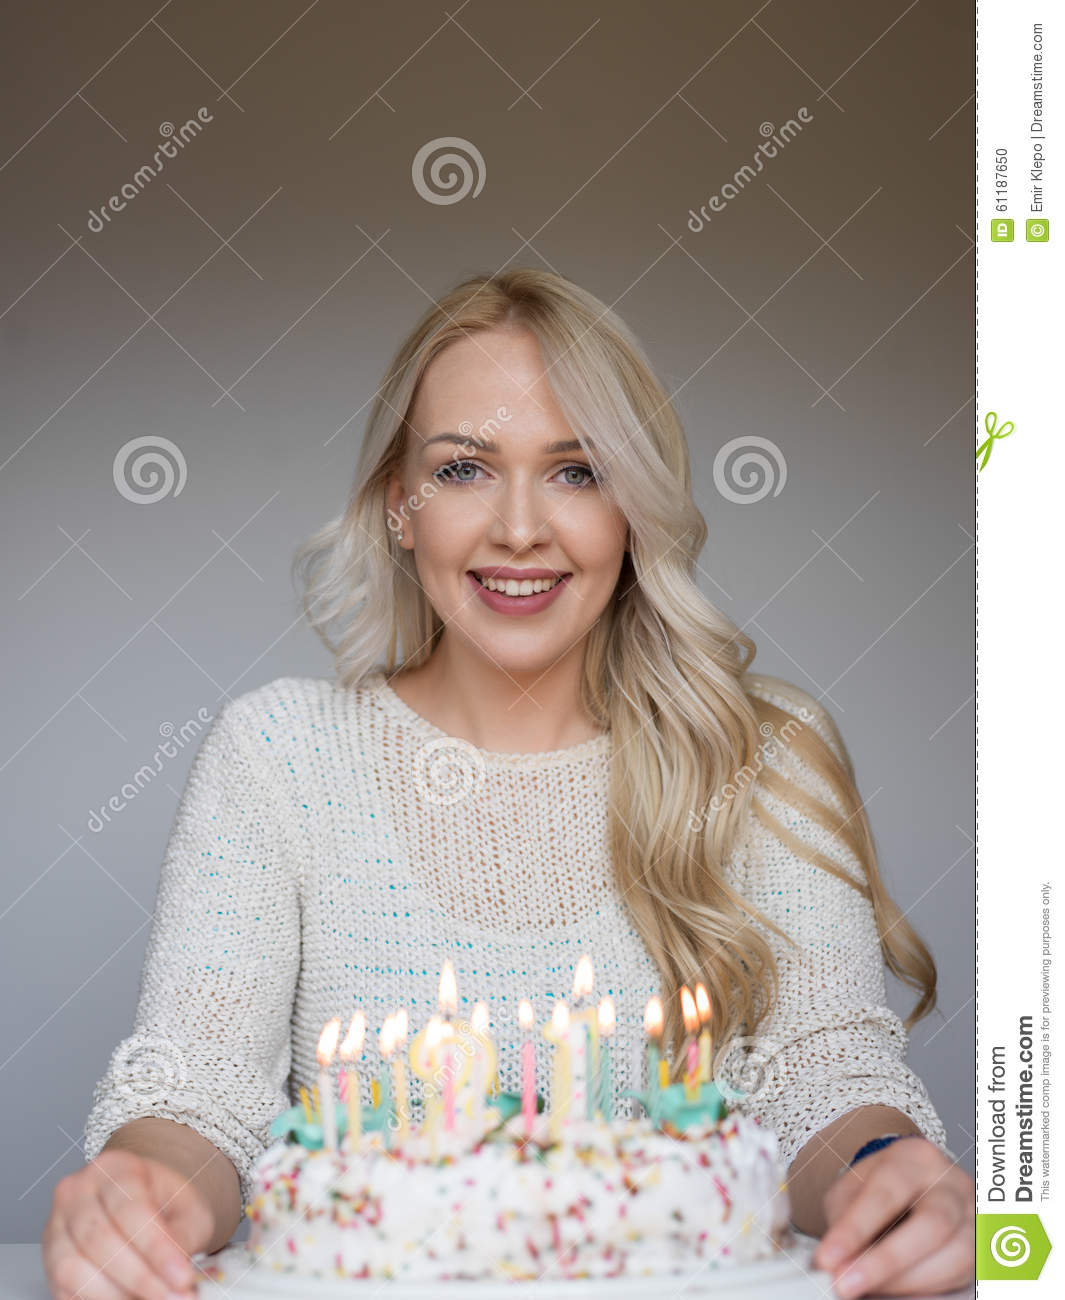 Portrait Of A Young Beautiful Blonde Girl On Birthday Stock Photo